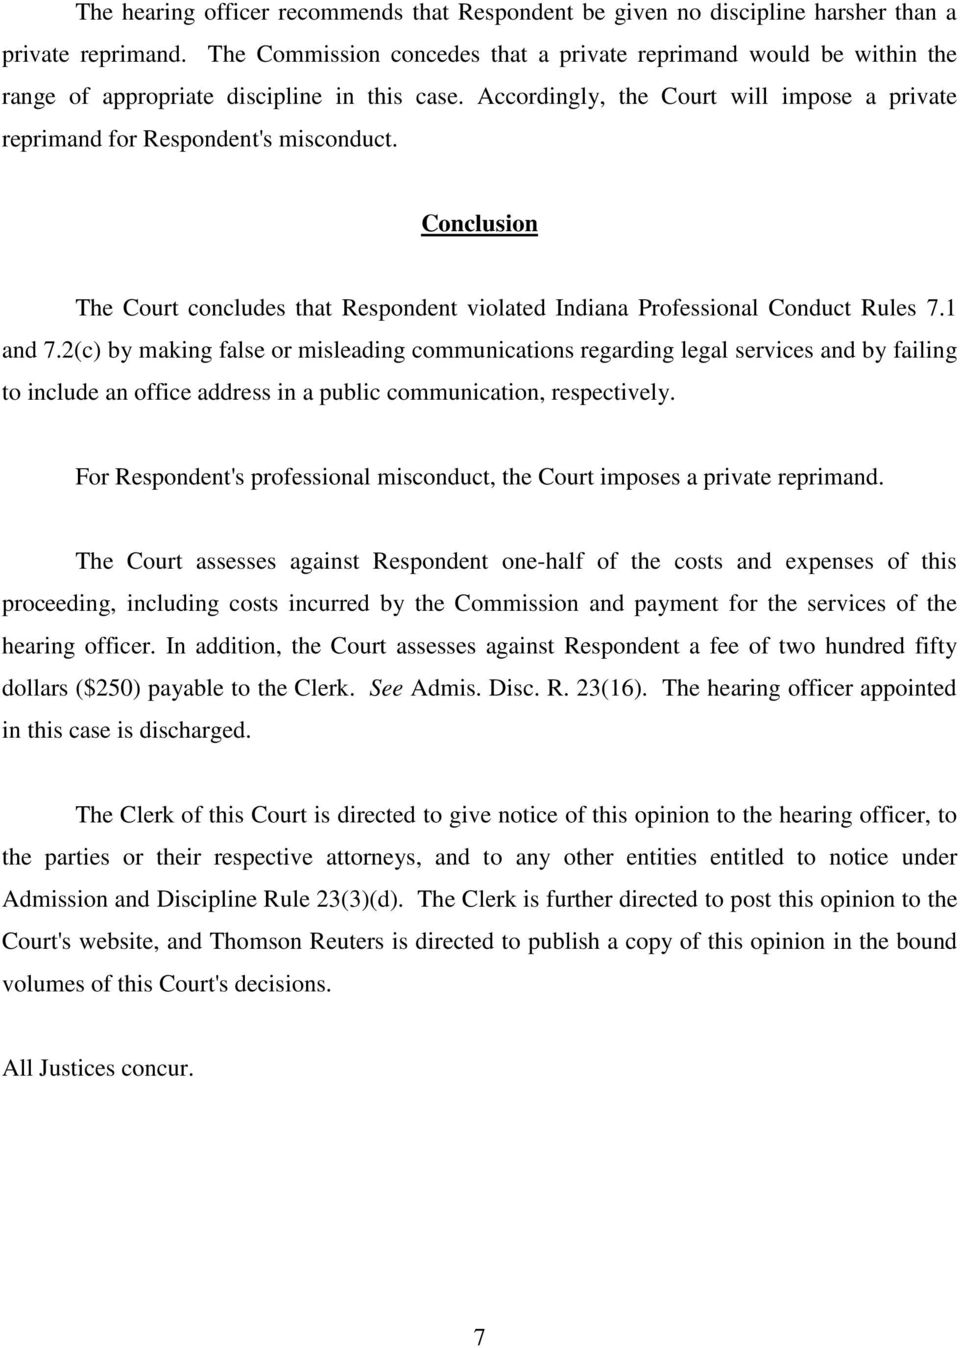 Conclusion The Court concludes that Respondent violated Indiana Professional Conduct Rules 7.1 and 7.